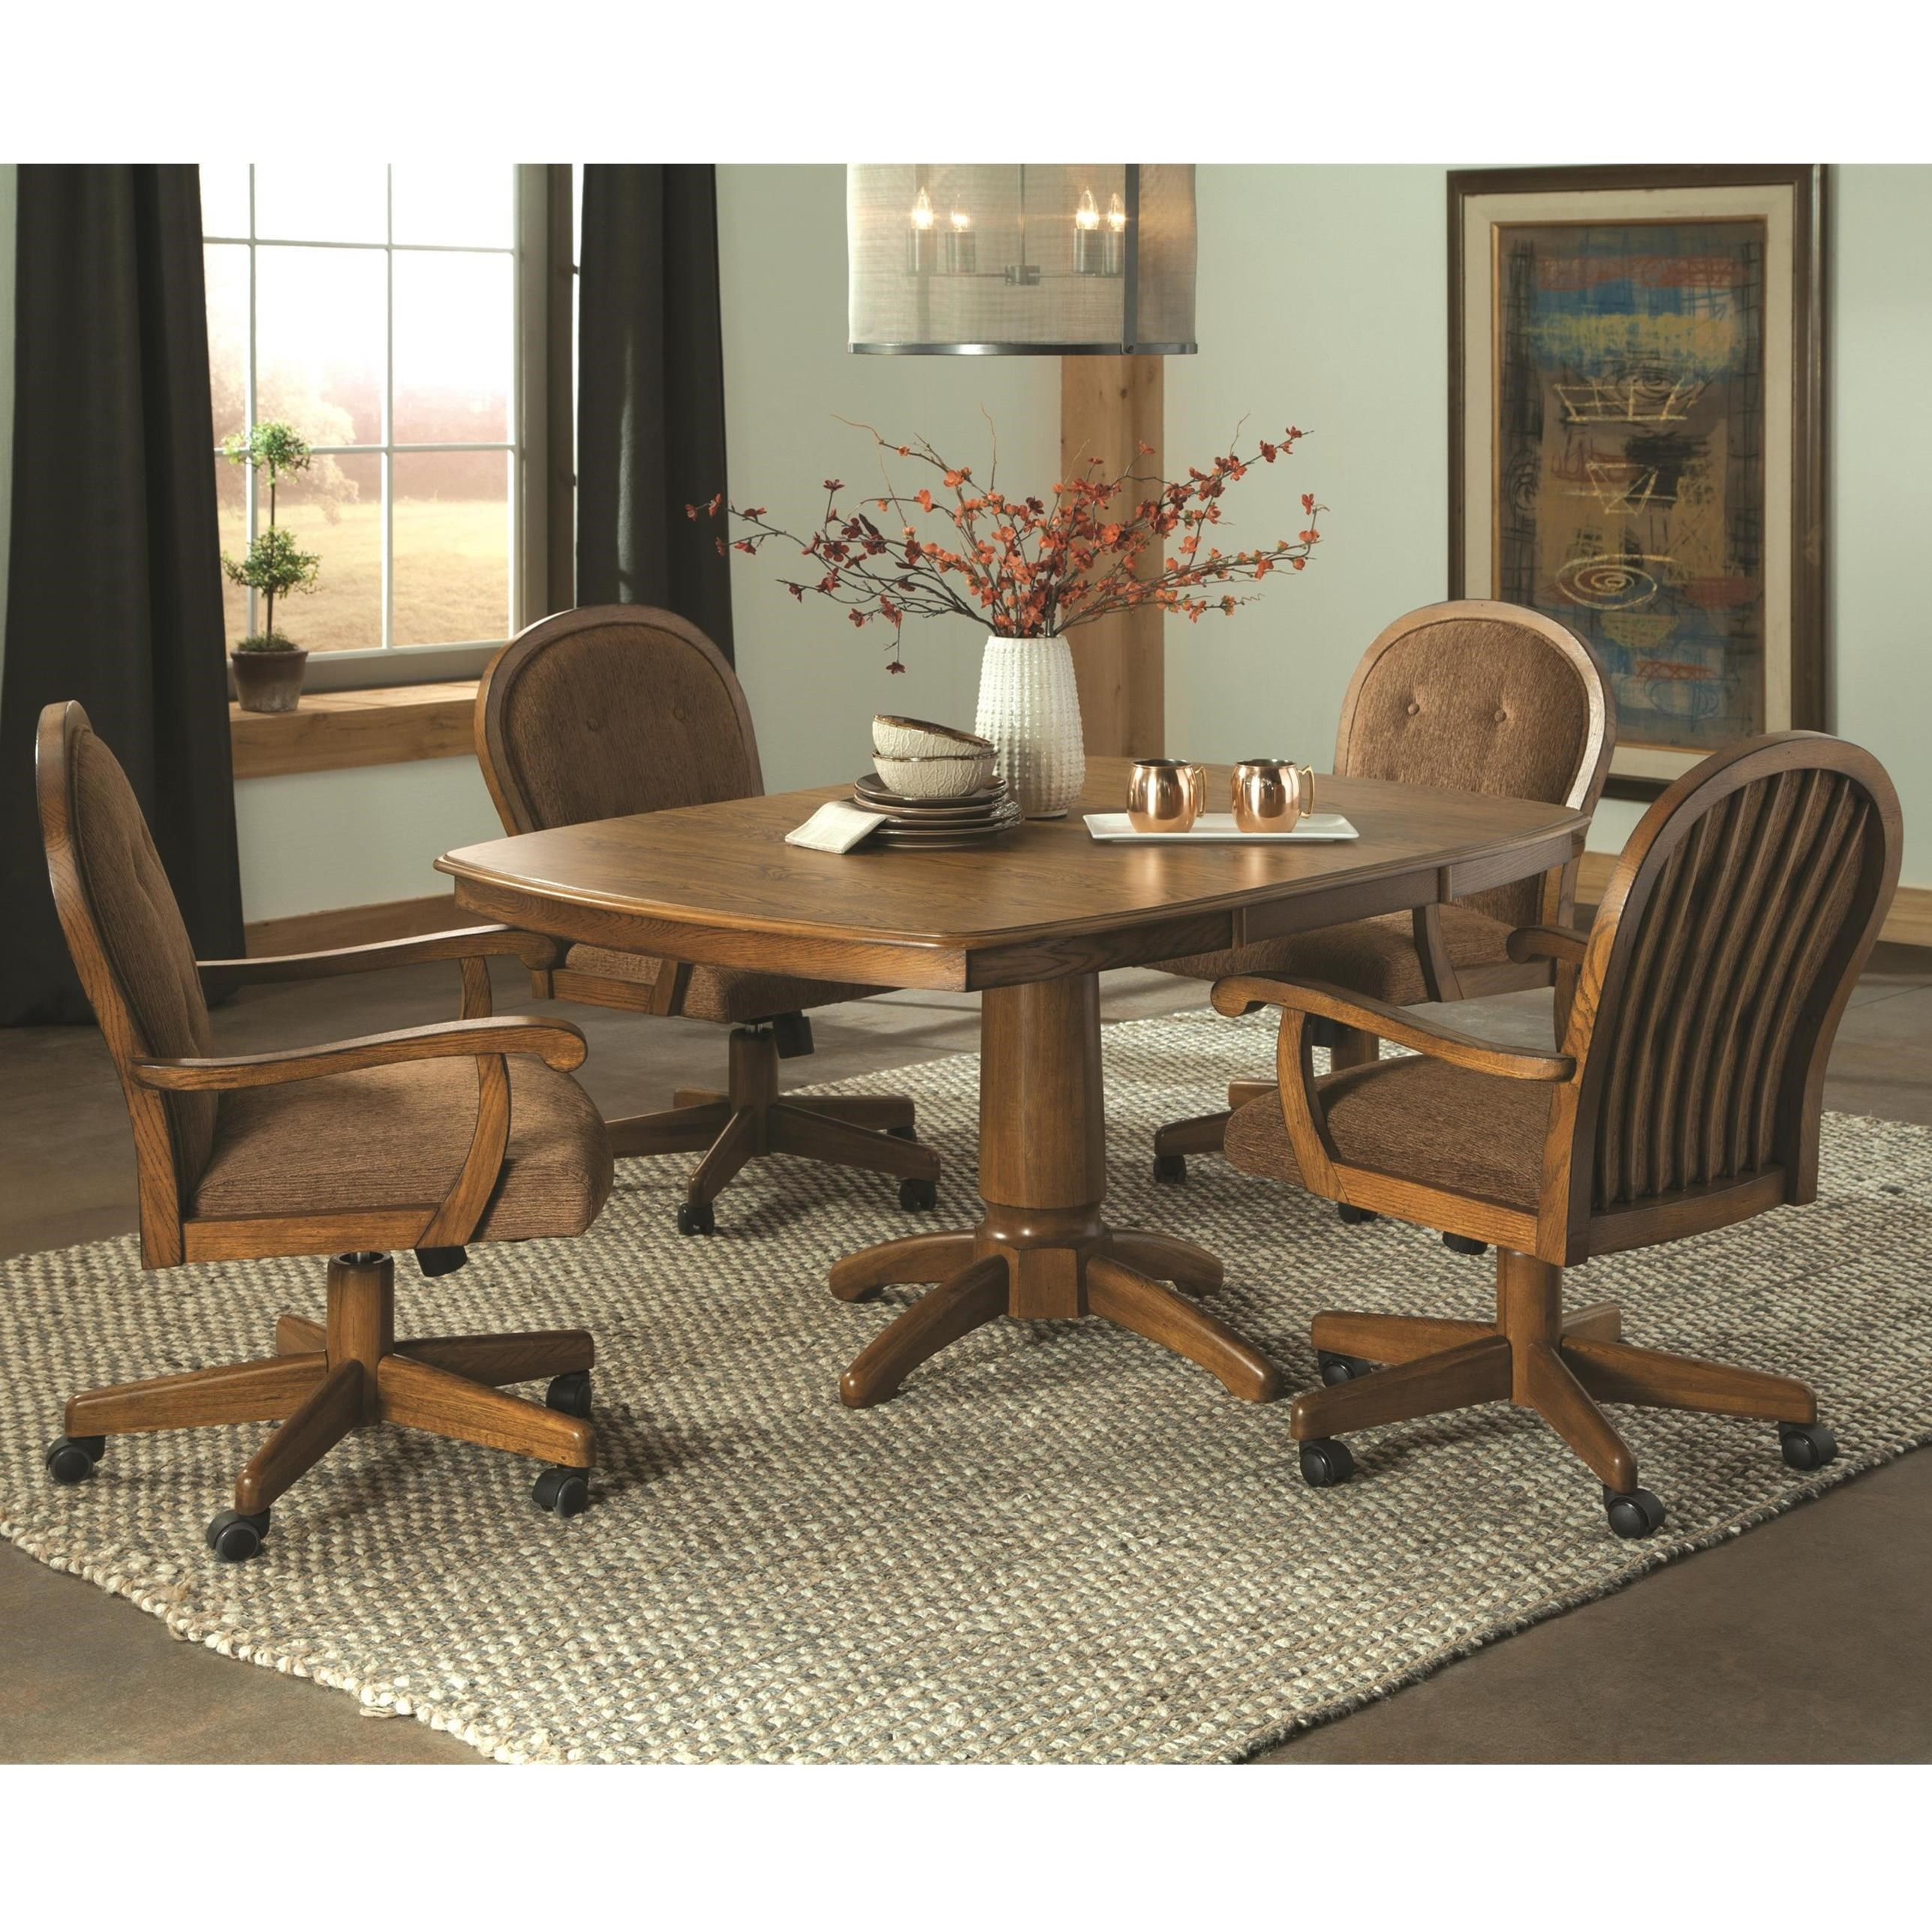 Picture of: Brooks Easy Living 5 Piece Caster Swivel Chair Dining Set Dean Bosler S Dining 5 Piece Sets